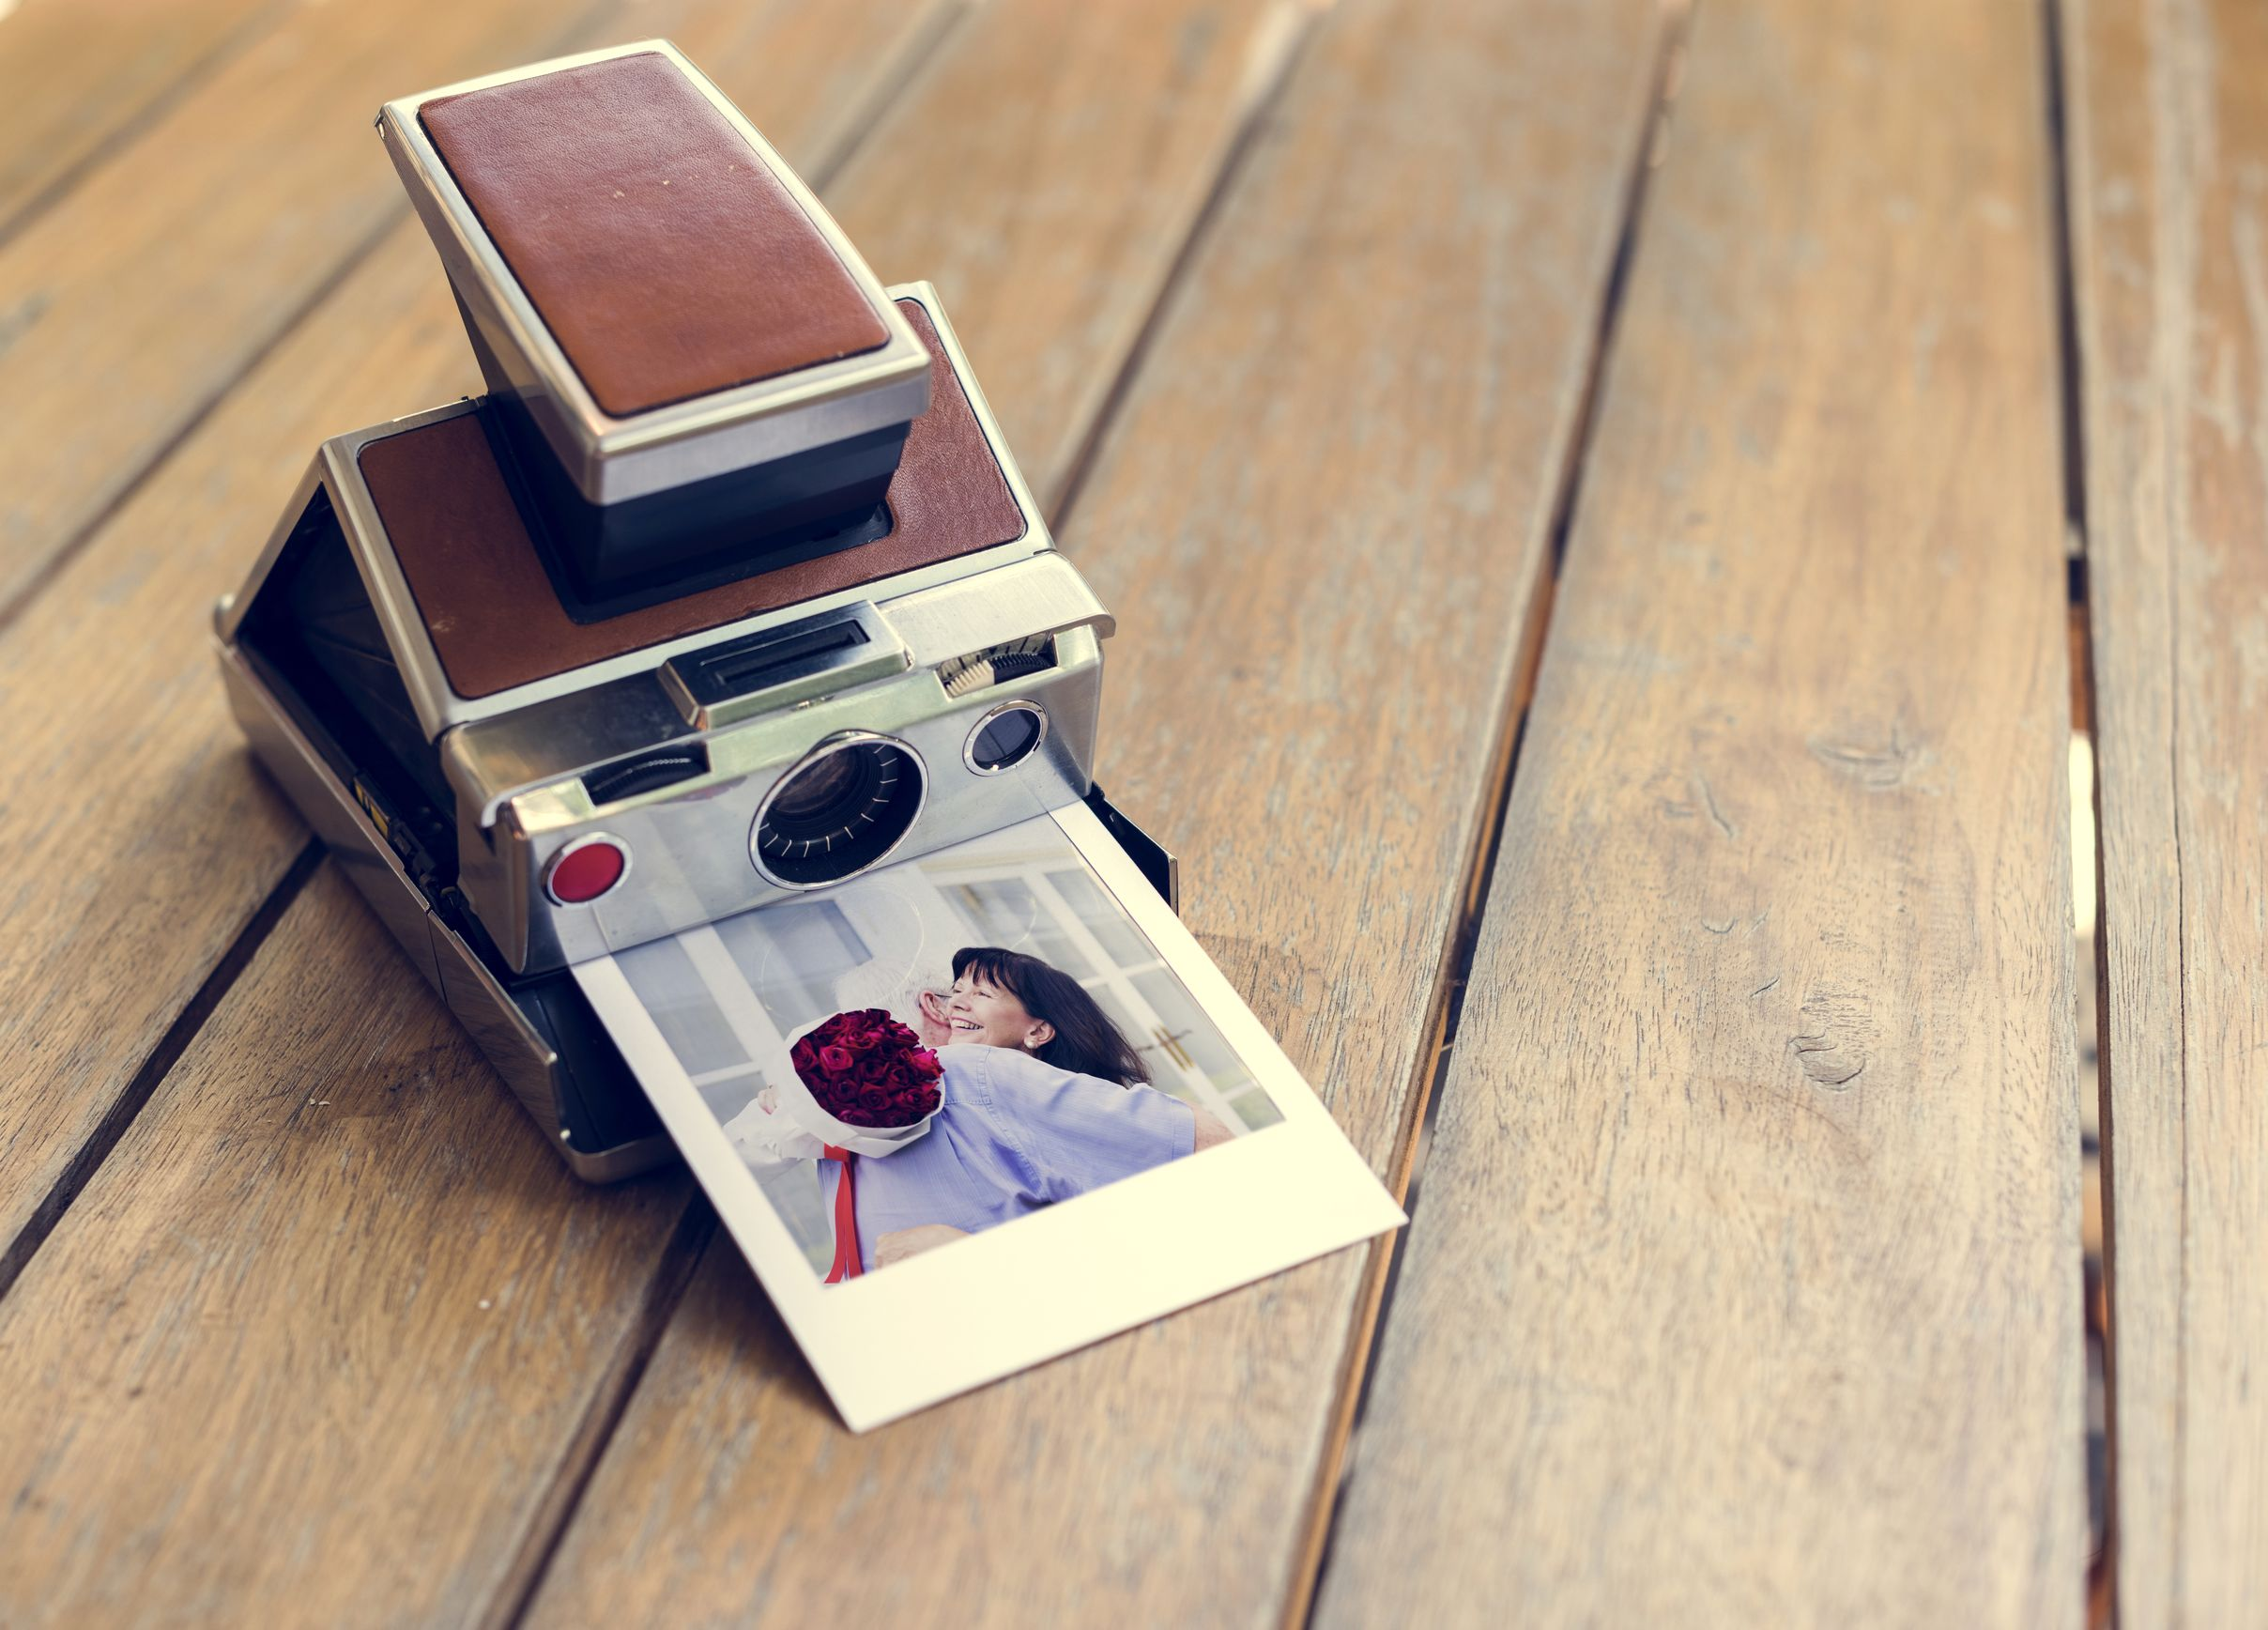 Best Polaroid Camera 2020: The ultimate guide